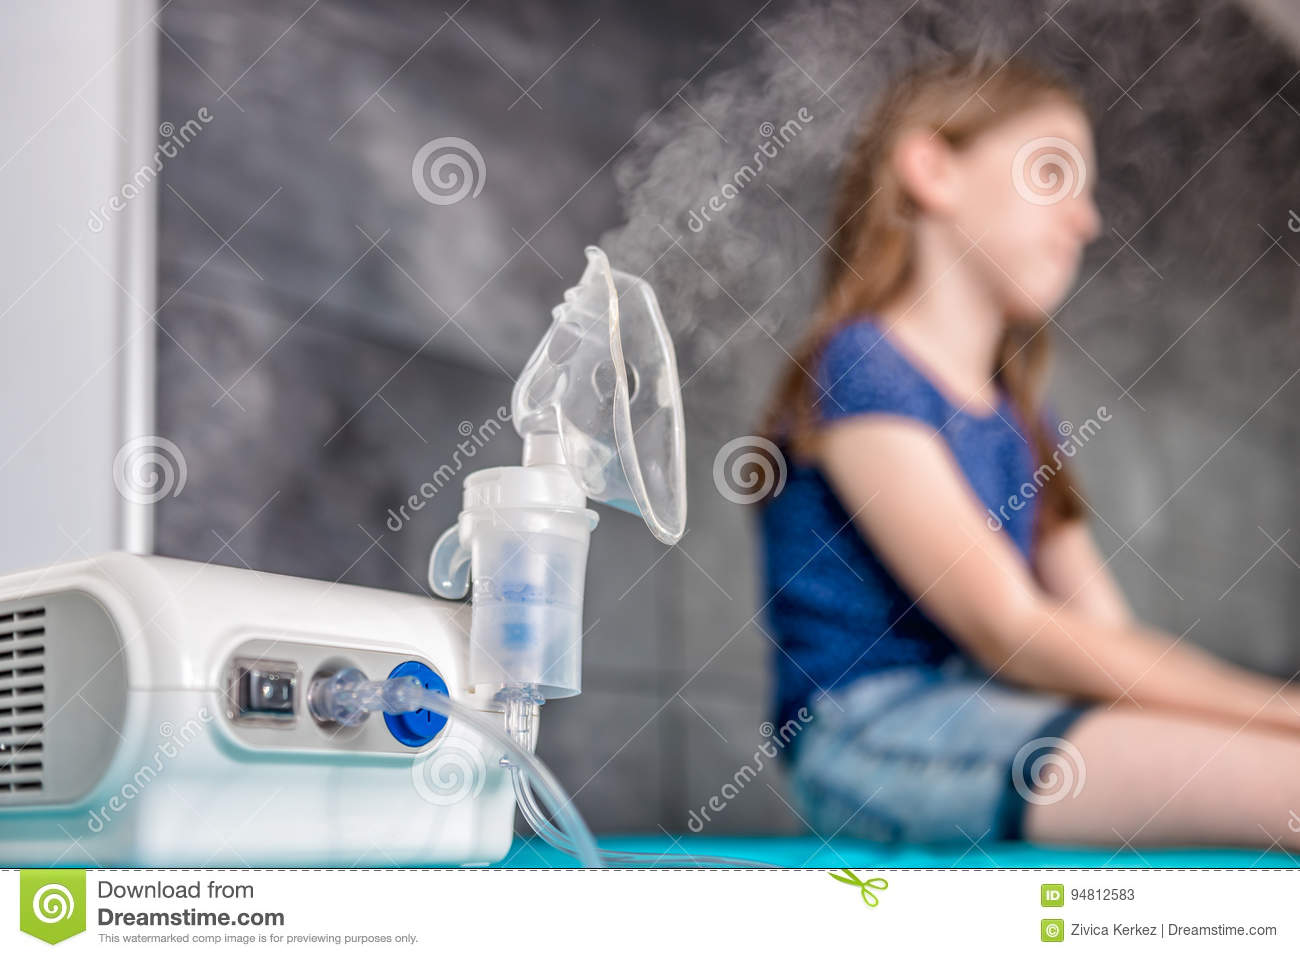 Little girl waiting for medical inhalation treatment with a nebulizer